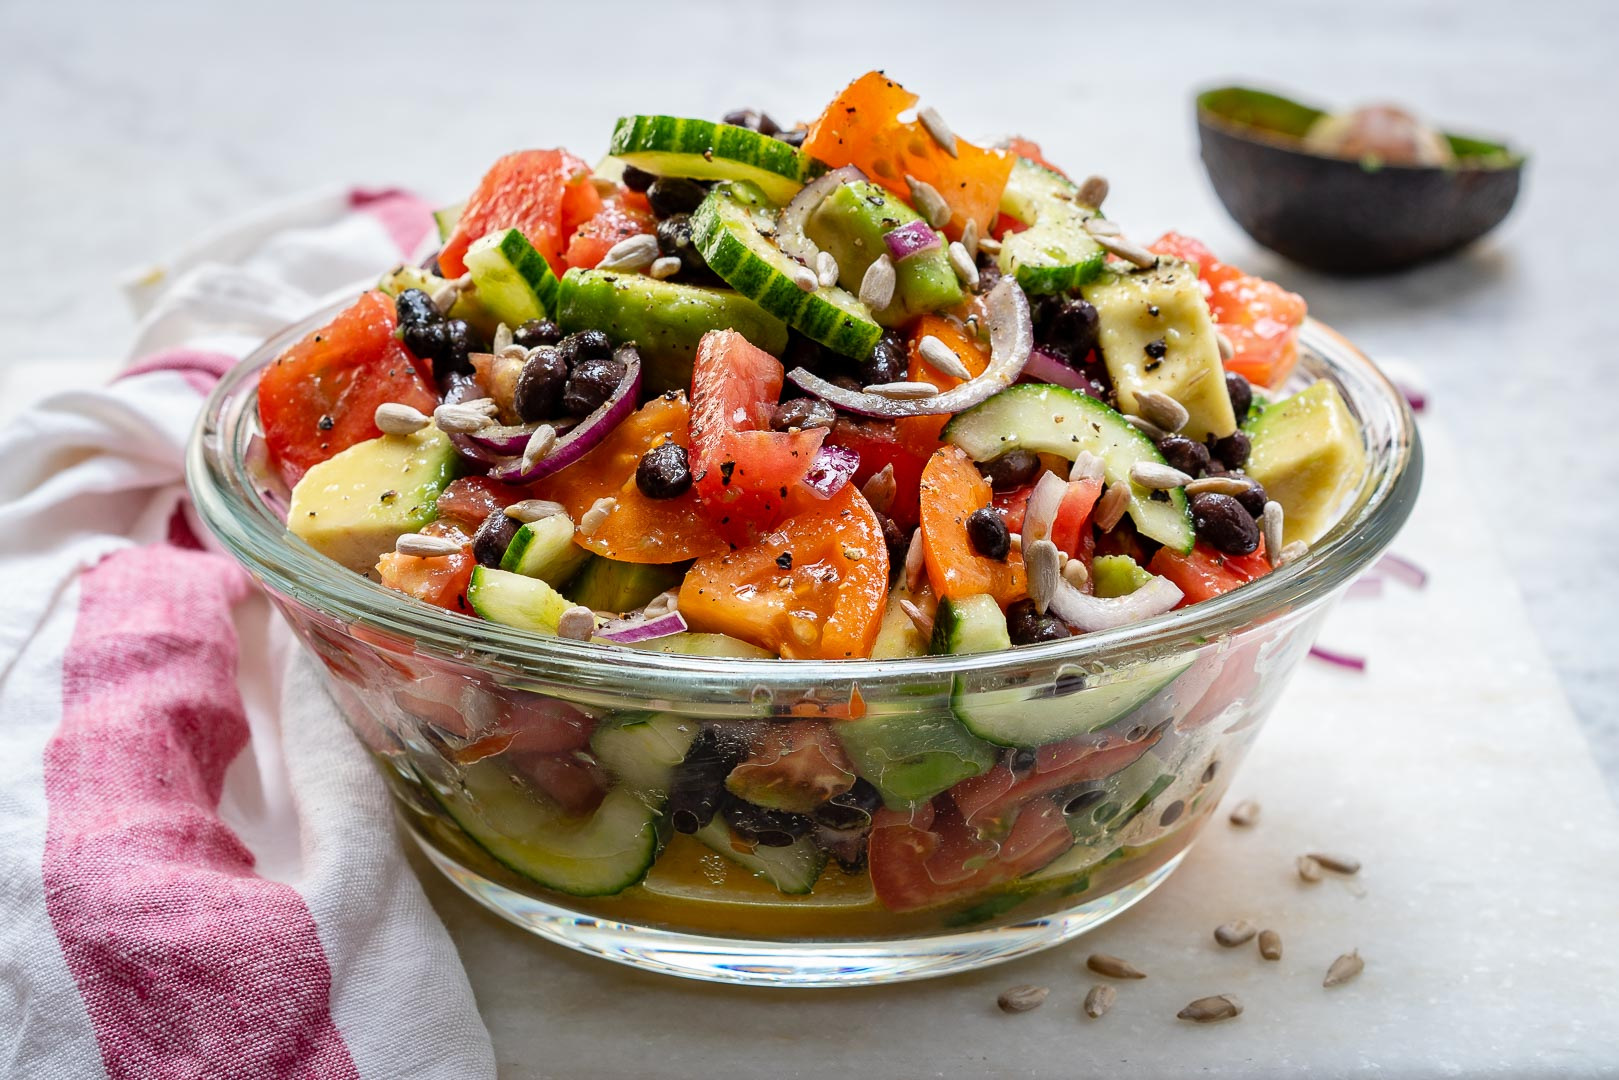 Eat Clean Avocado + Black bean salad